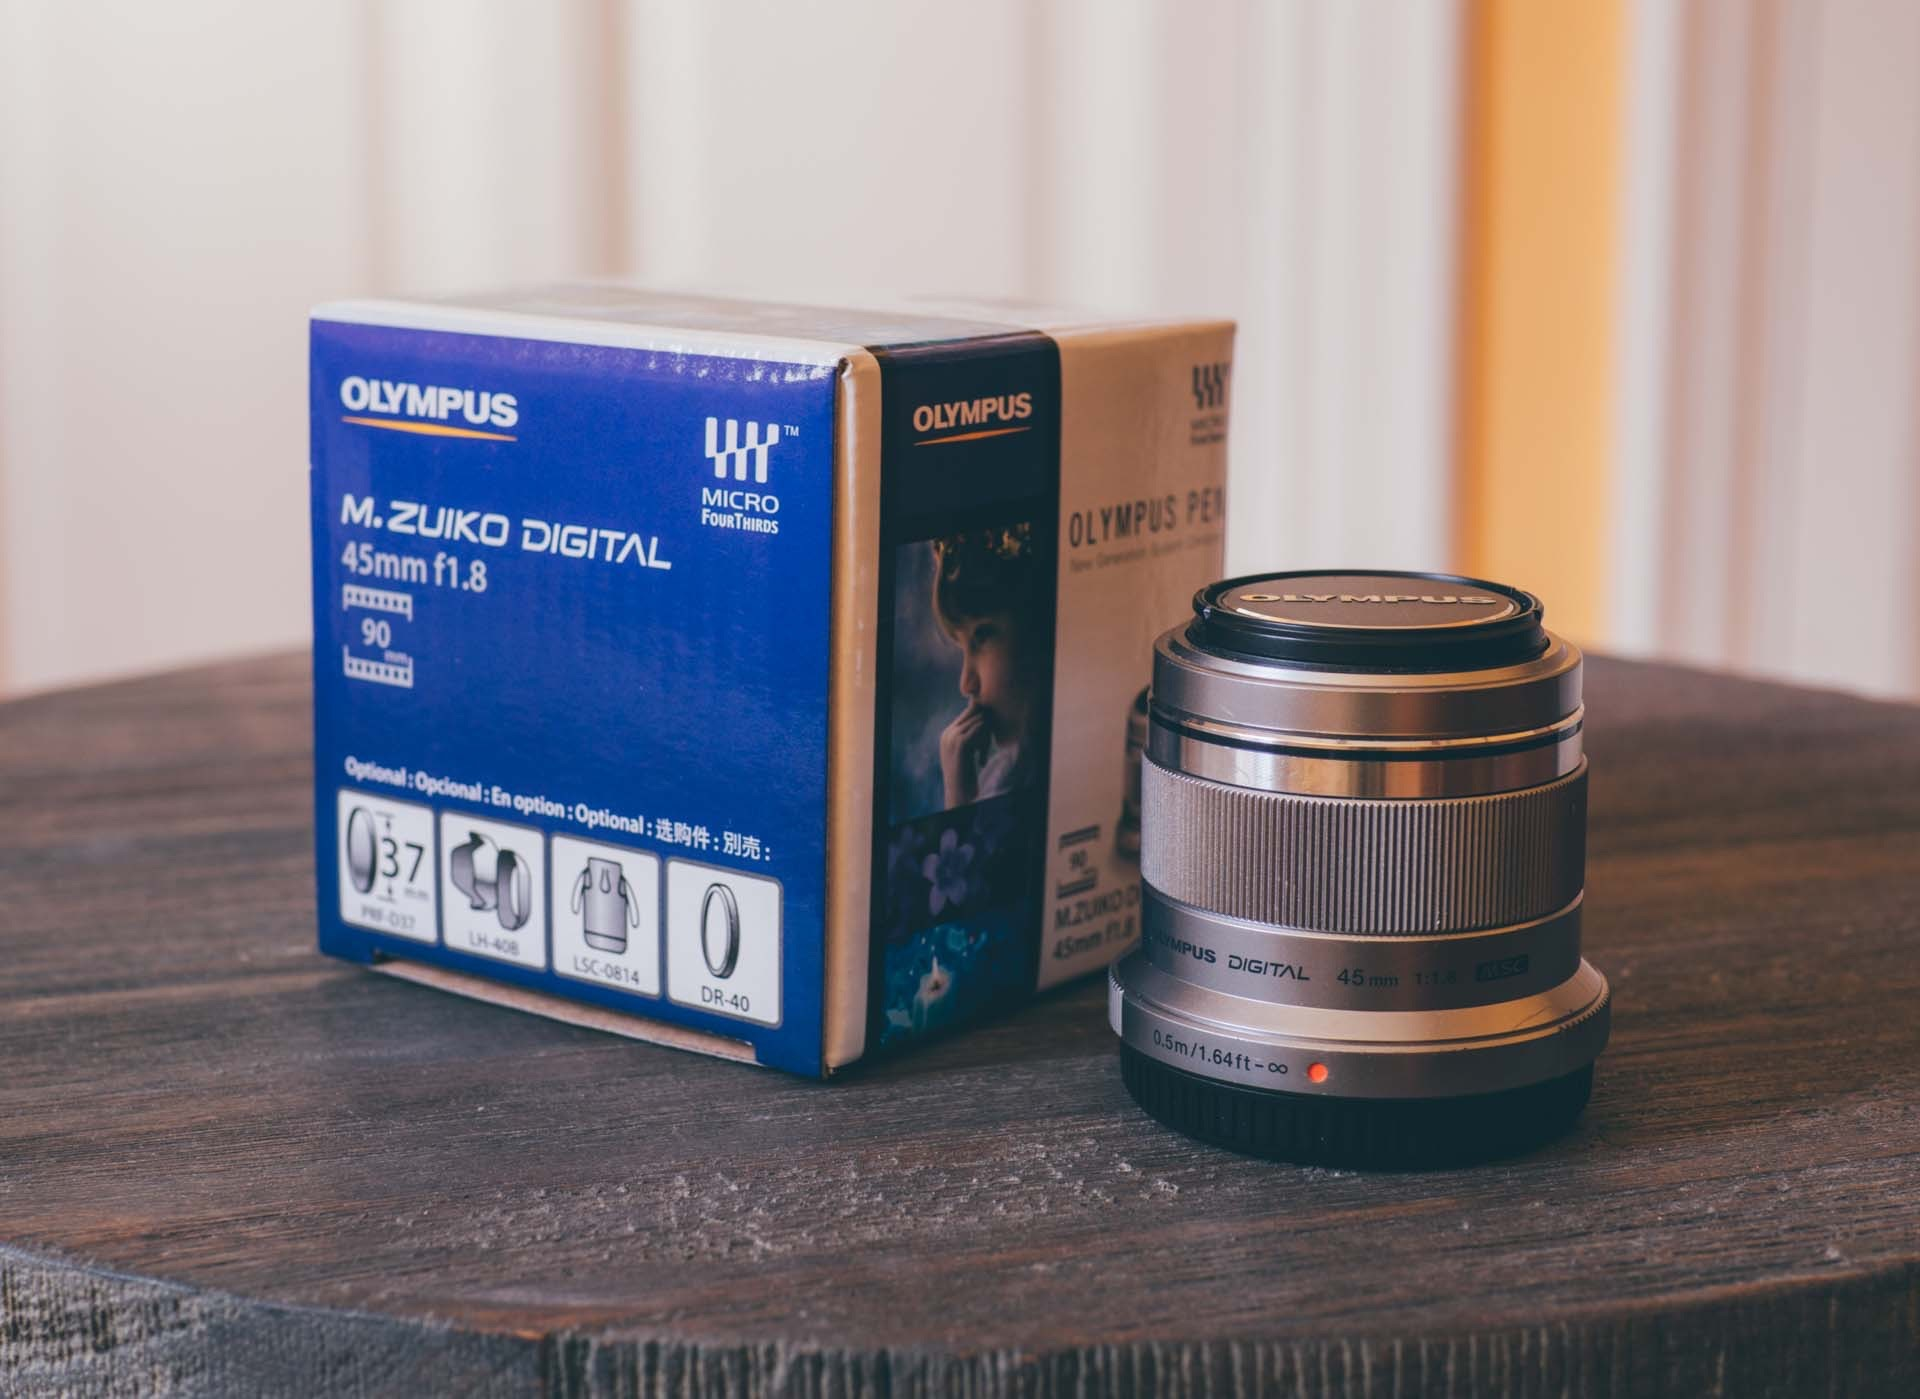 The Olympus 45mm f/1.8 telephoto lens. ($399)